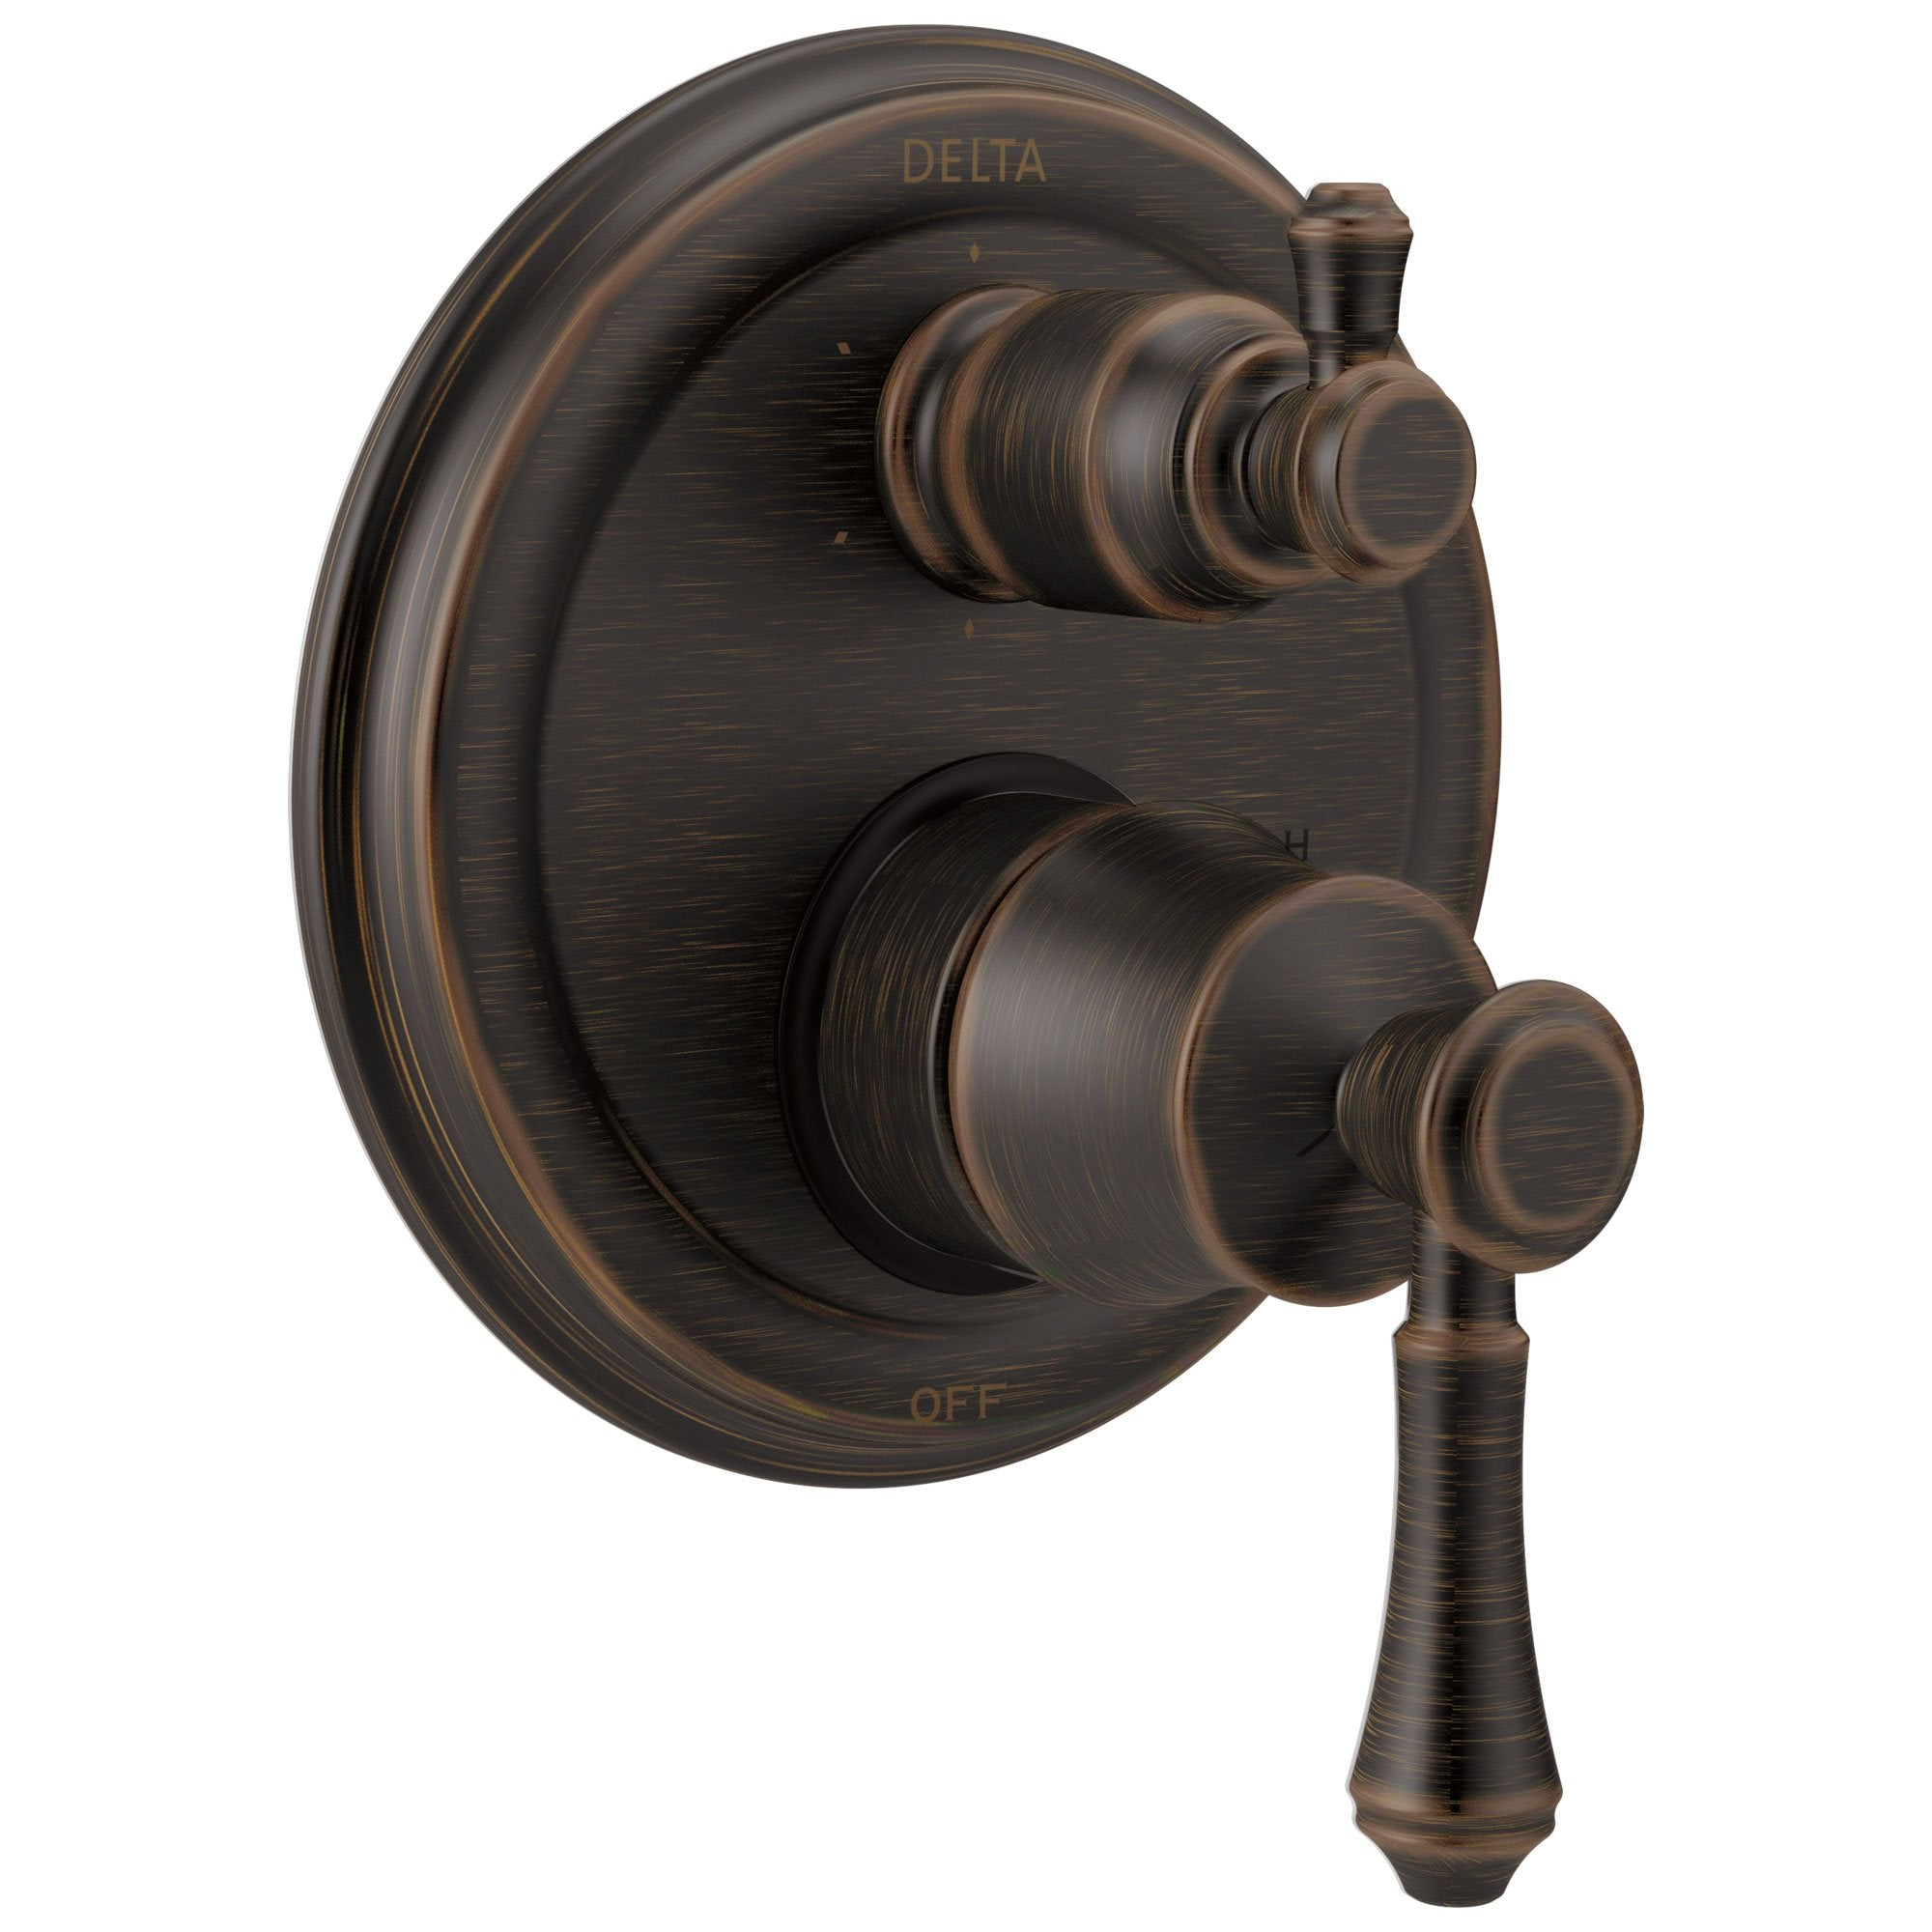 Delta Cassidy Venetian Bronze Traditional Shower Faucet Control Handle with 6-Setting Integrated Diverter Includes Trim Kit and Rough-in Valve with Stops D2187V